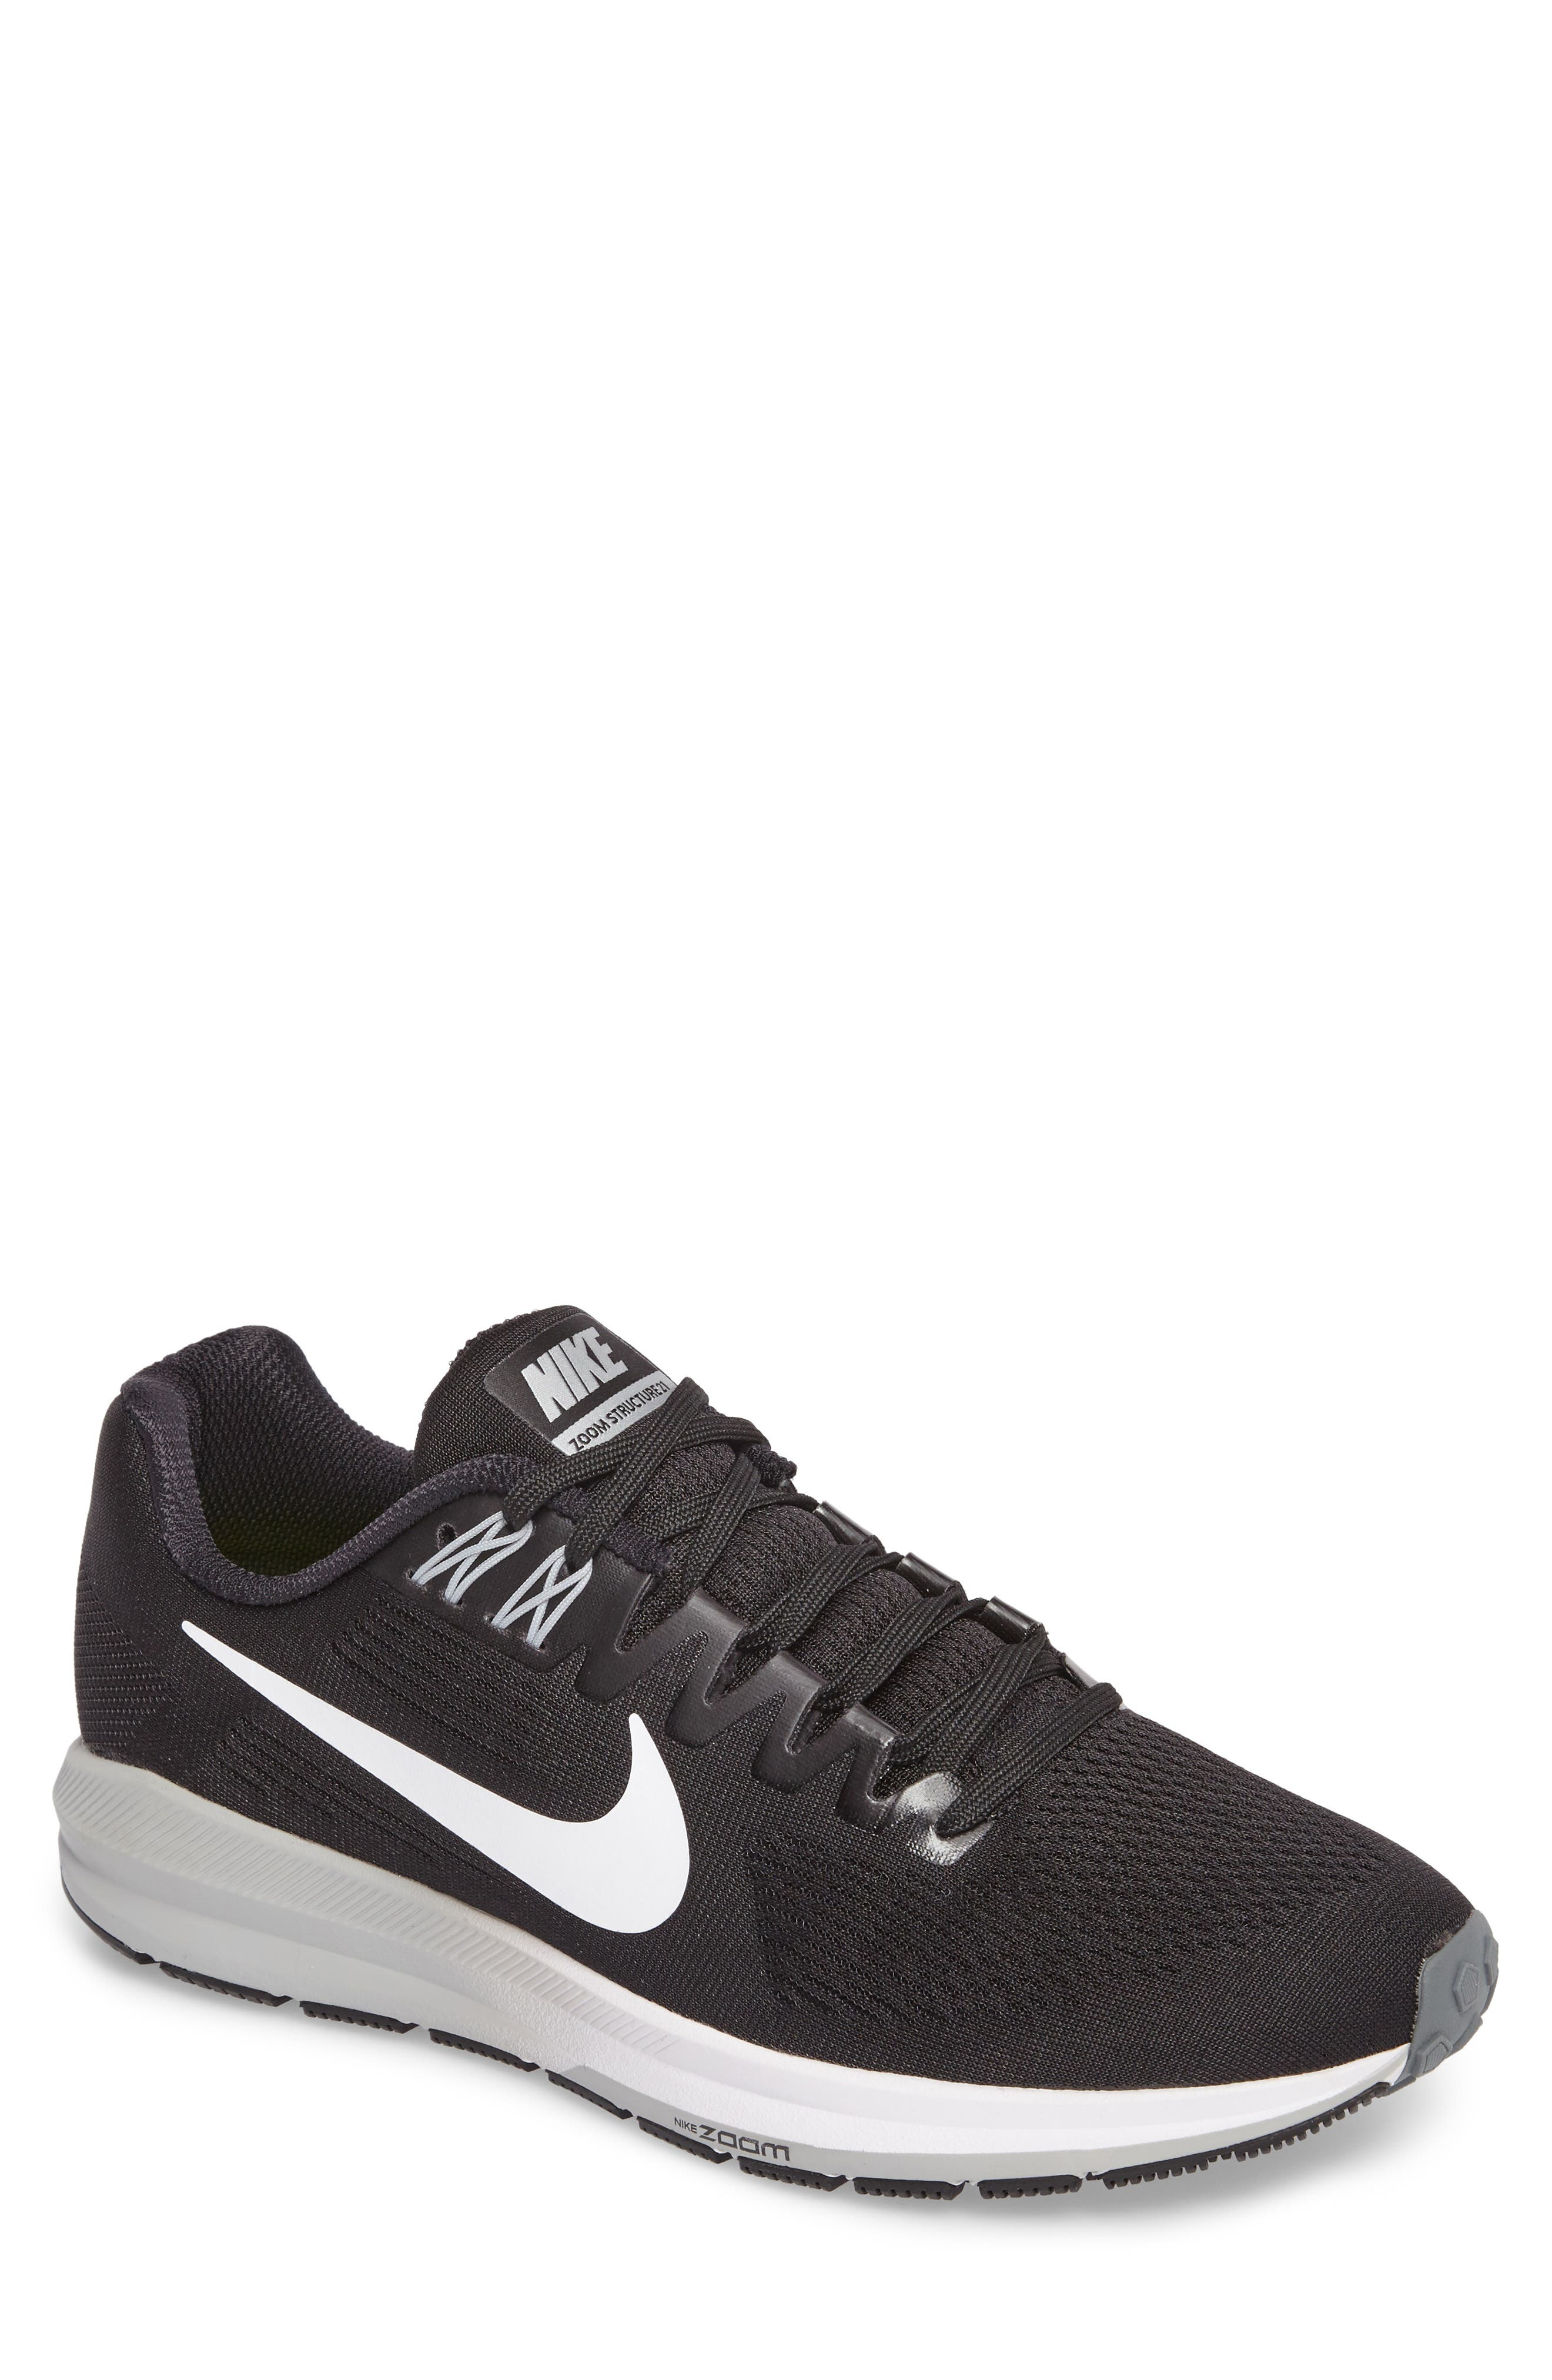 Air Zoom Structure 21 Running Shoe,                         Main,                         color, Black/White/Wolf Grey